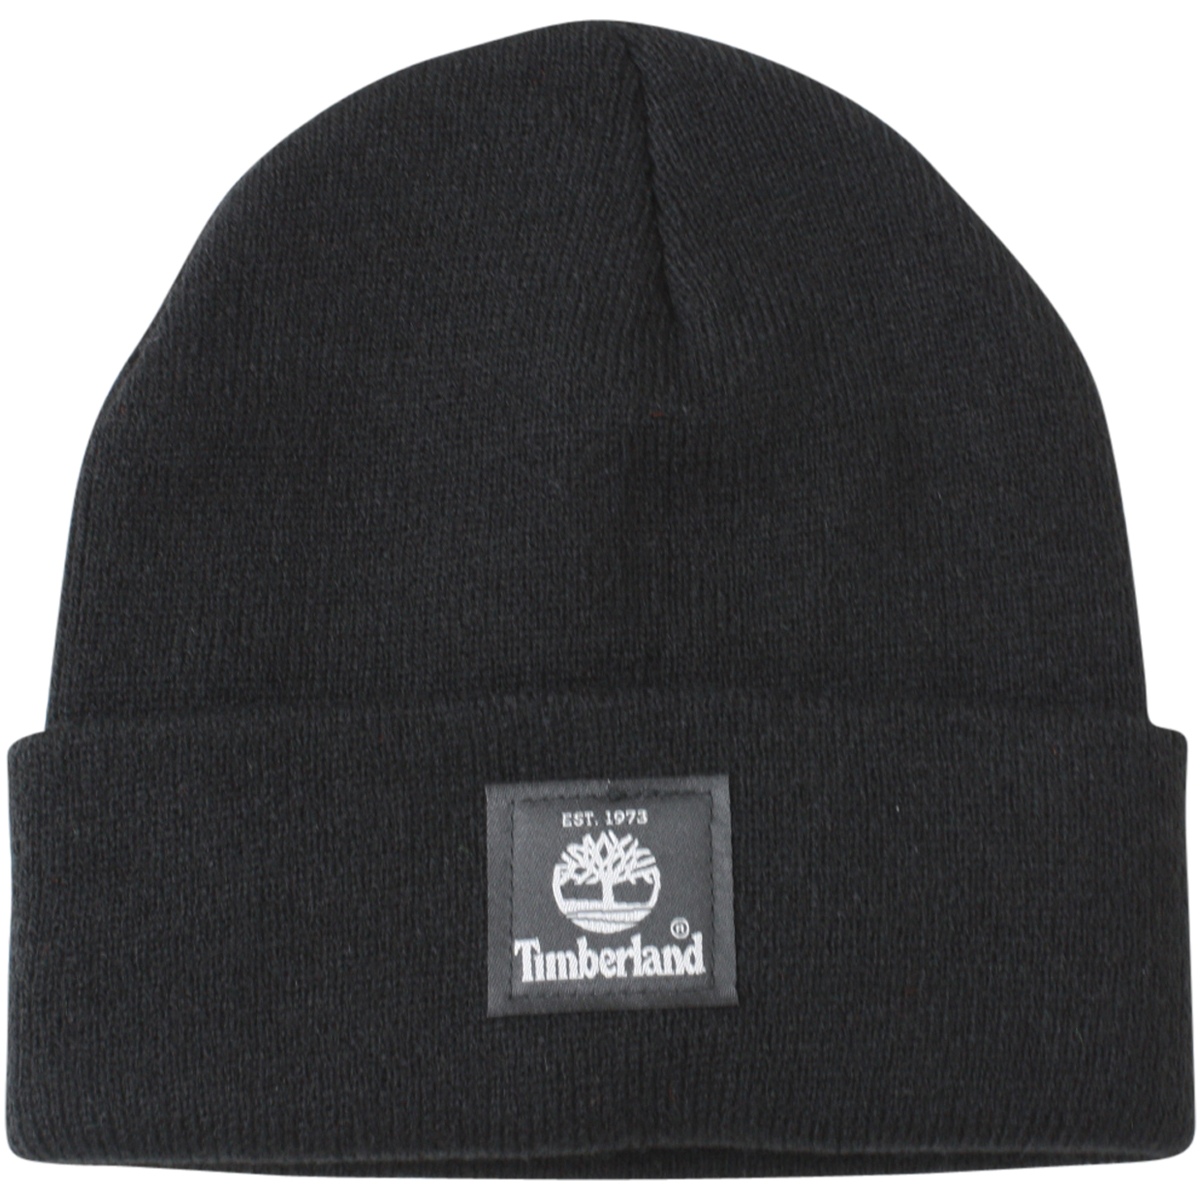 Timberland Men's Classic Knit Watch Cap Beanie Hat (One Size